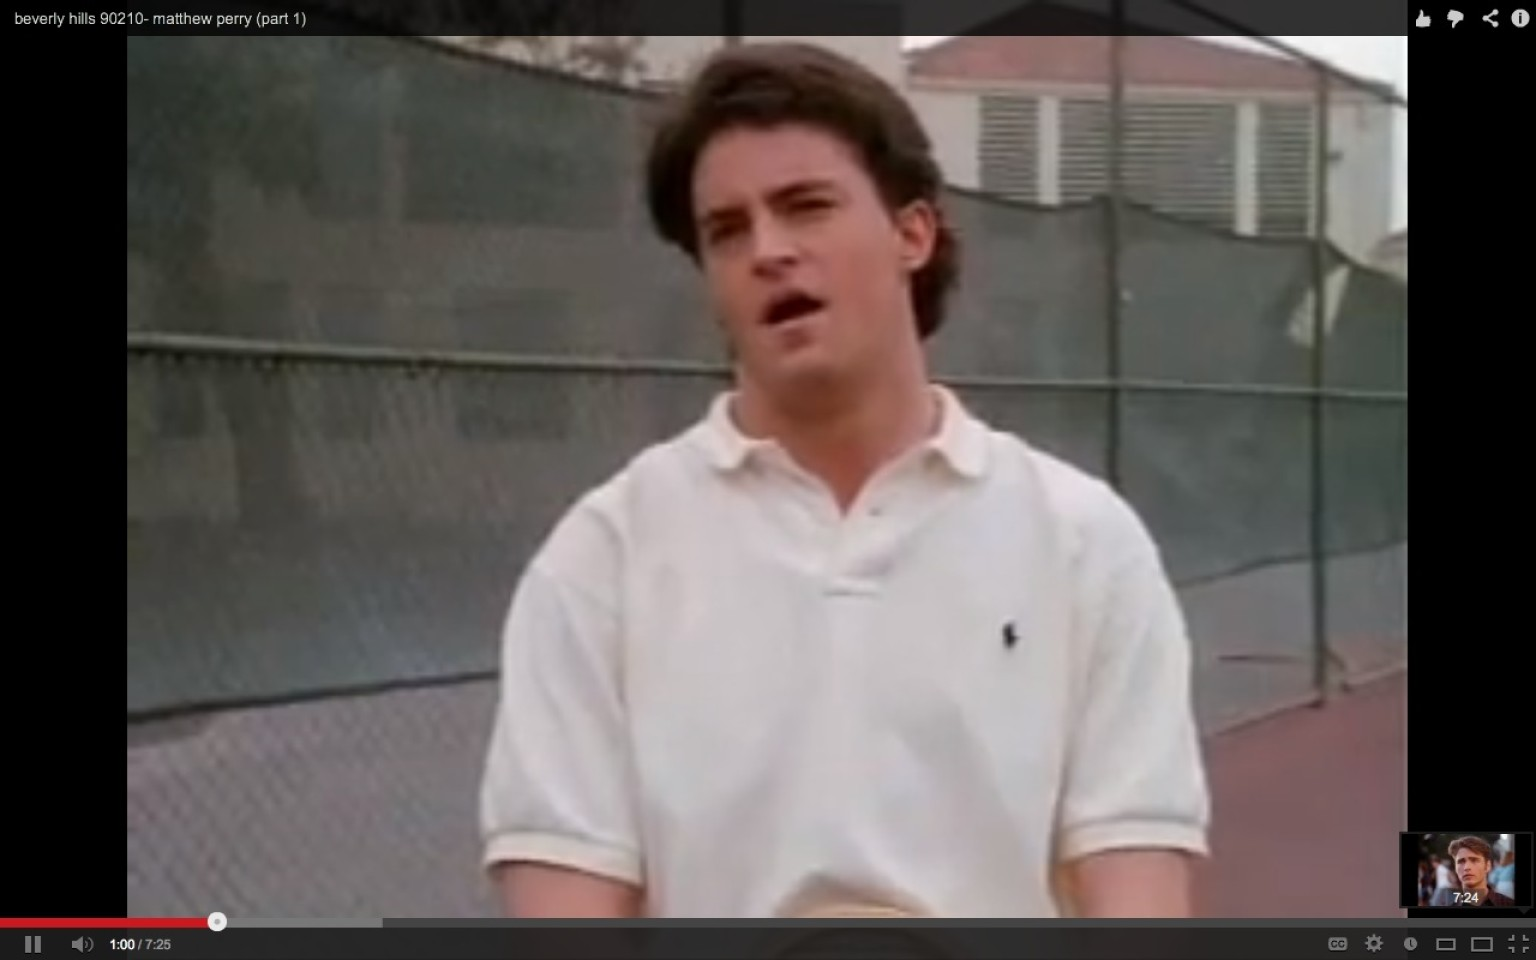 young matthew perry was on beverly hills 90210